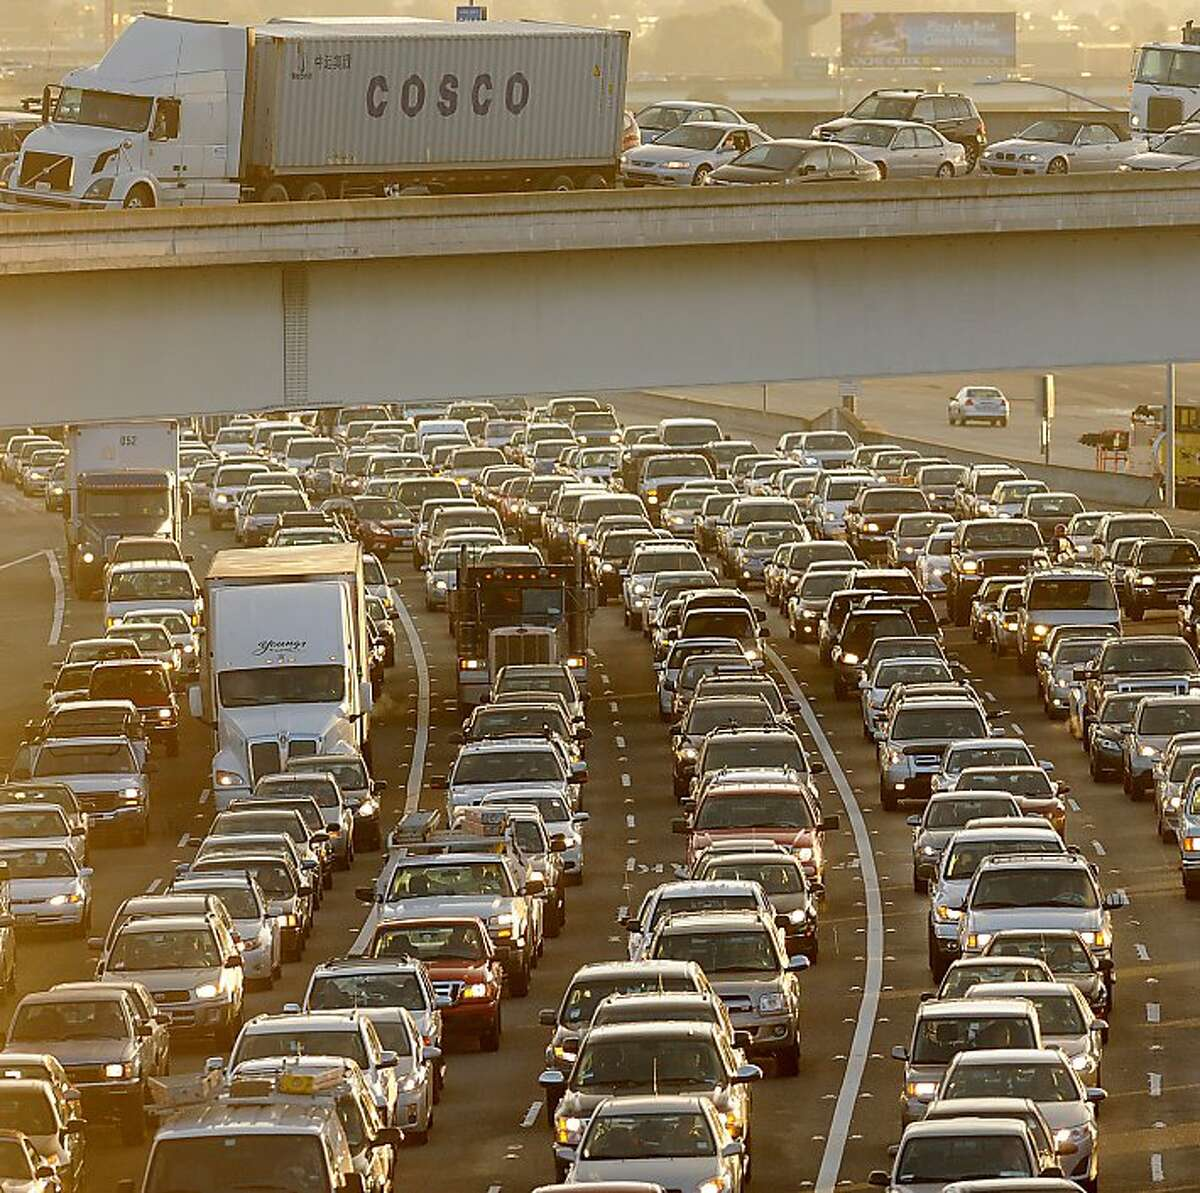 Traffic crawls towards the Bay Bridge toll plaza on Friday, Feb. 8, 2013, in Oakland, Calif. According to the Urban Mobility Report, the Bay Area ties Los Angeles for having the second-worst congestion in the country.